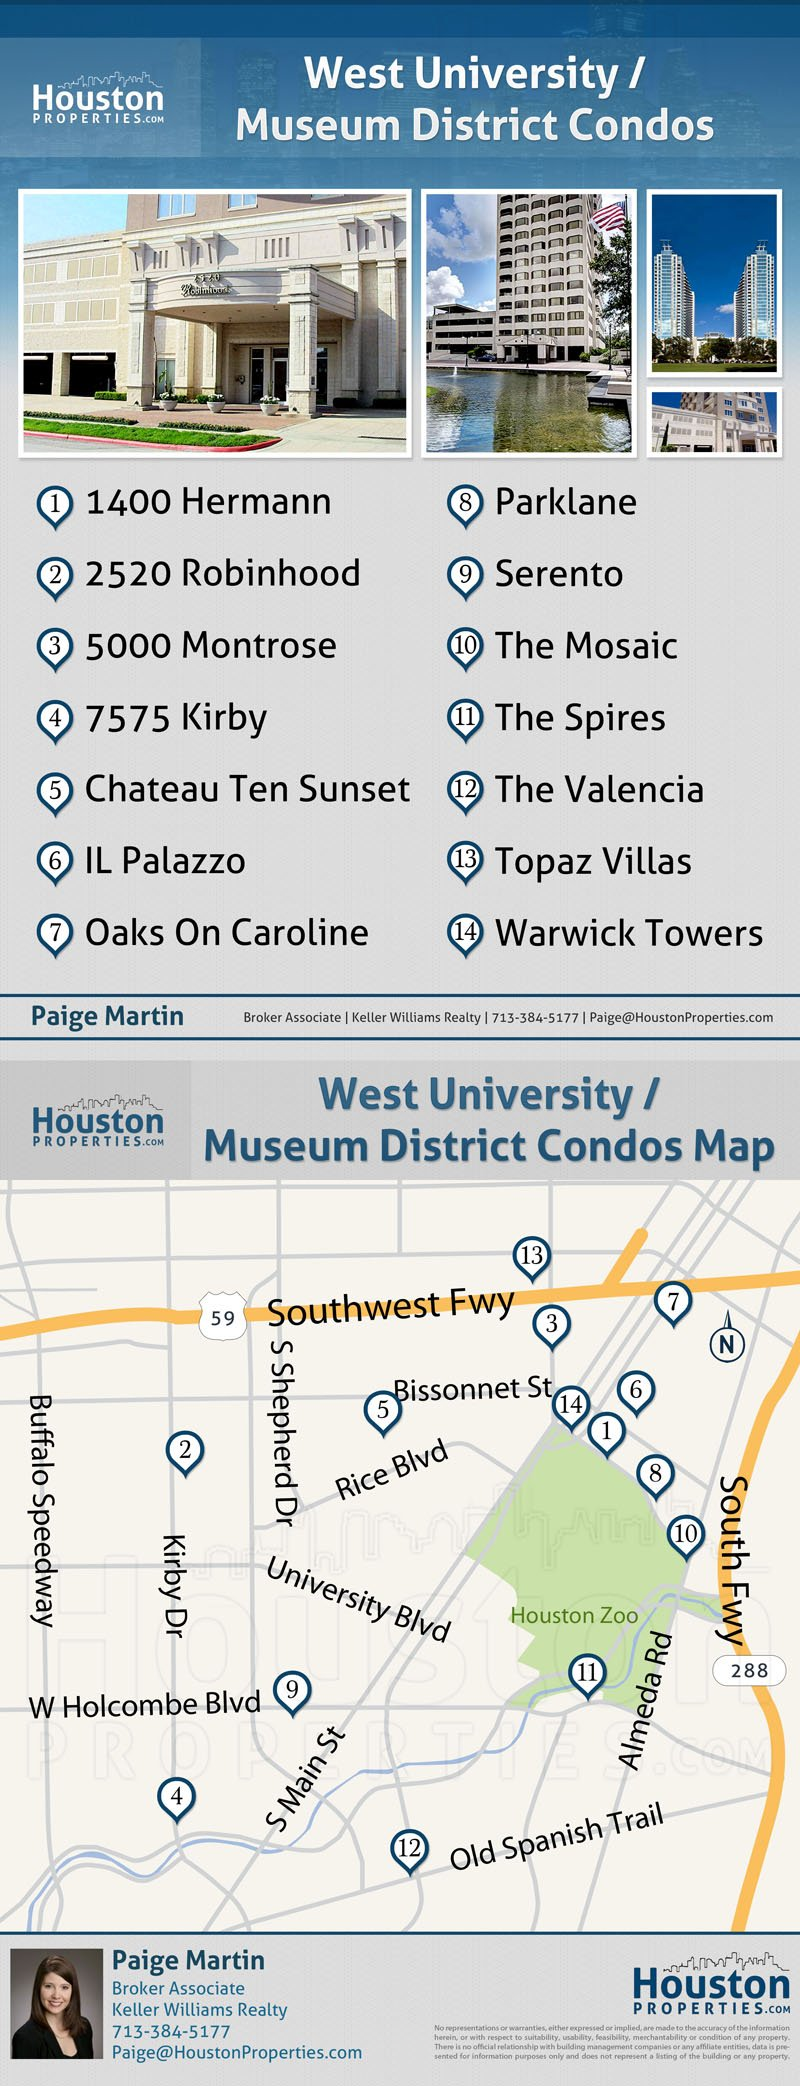 map of museum district houston condos